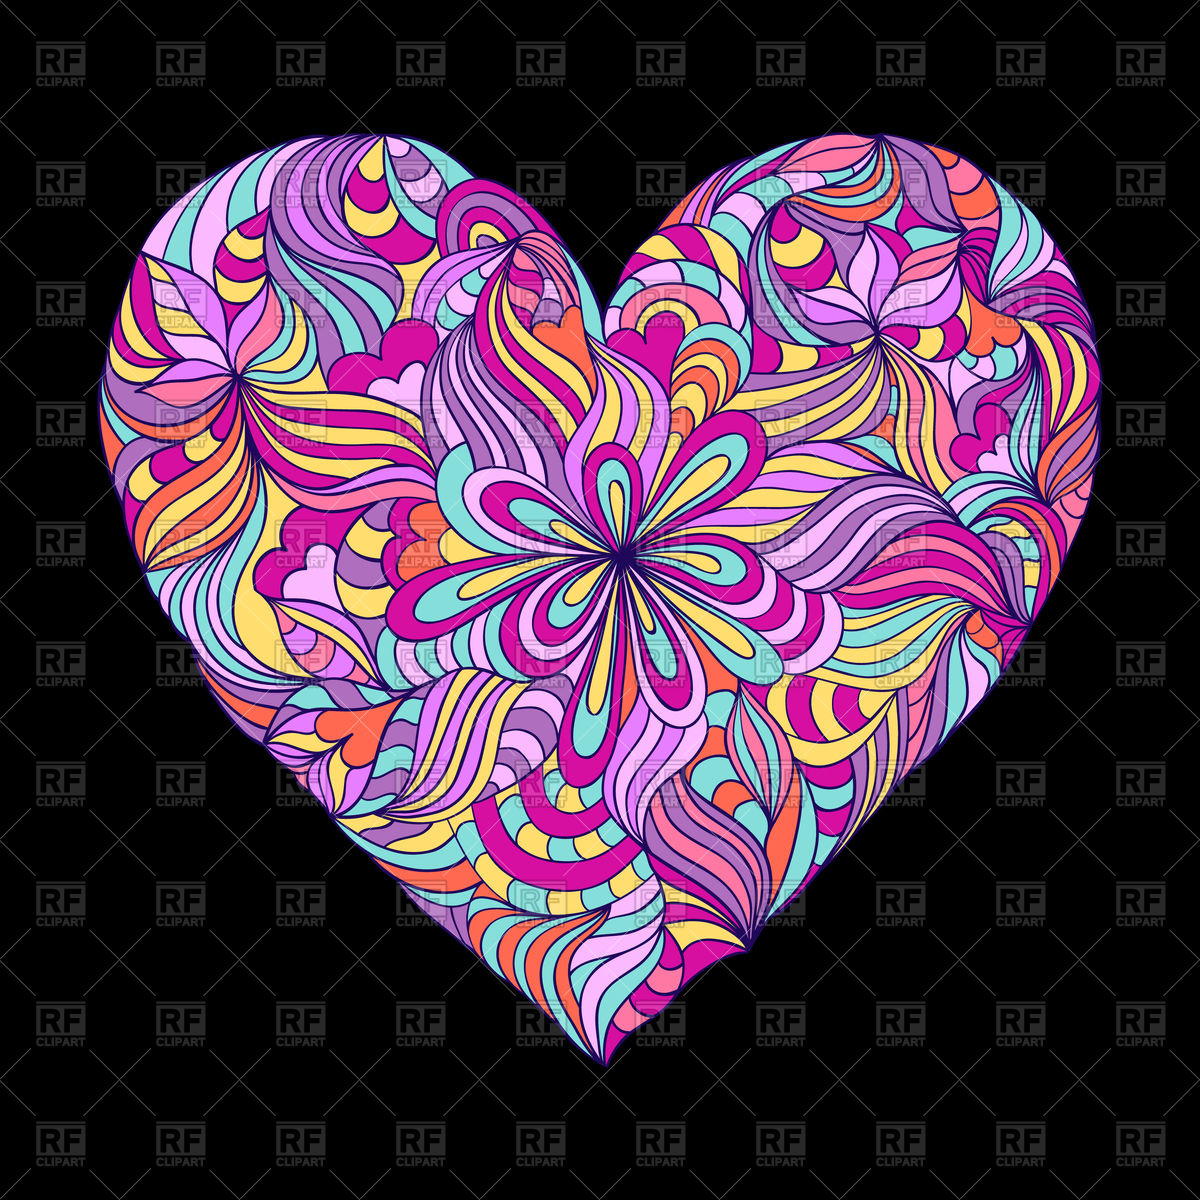 Colorful heart on black background Vector Image #97937.